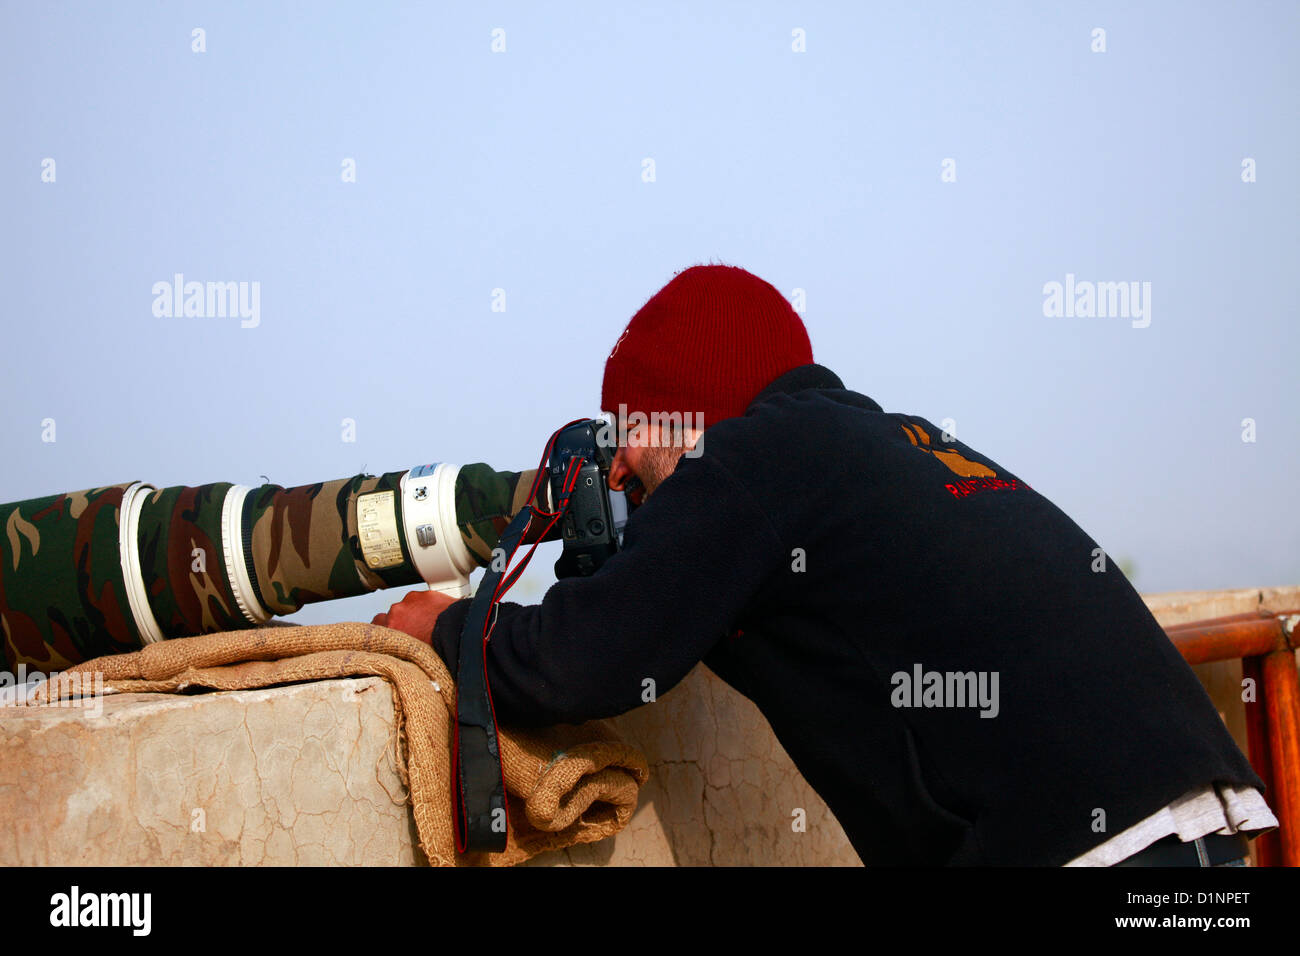 Wildlife Photographer - Stock Image